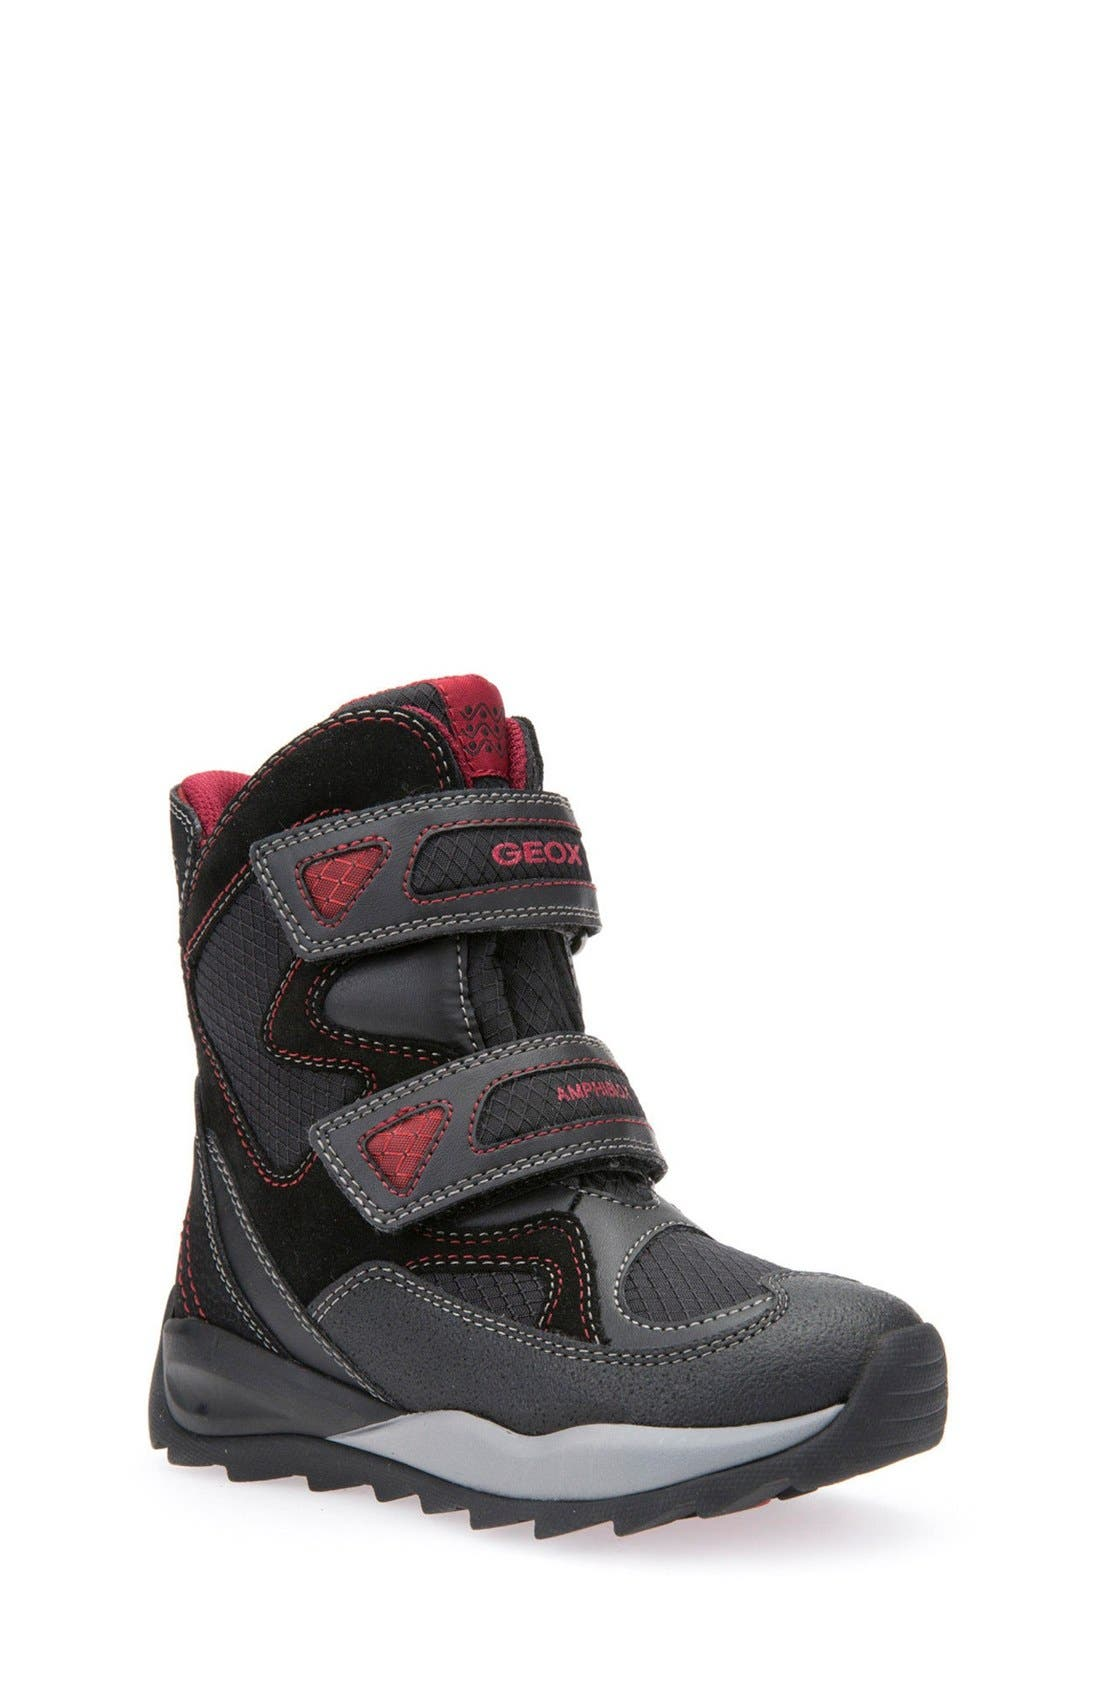 GEOX 'Orizont ABX' Waterproof Boot